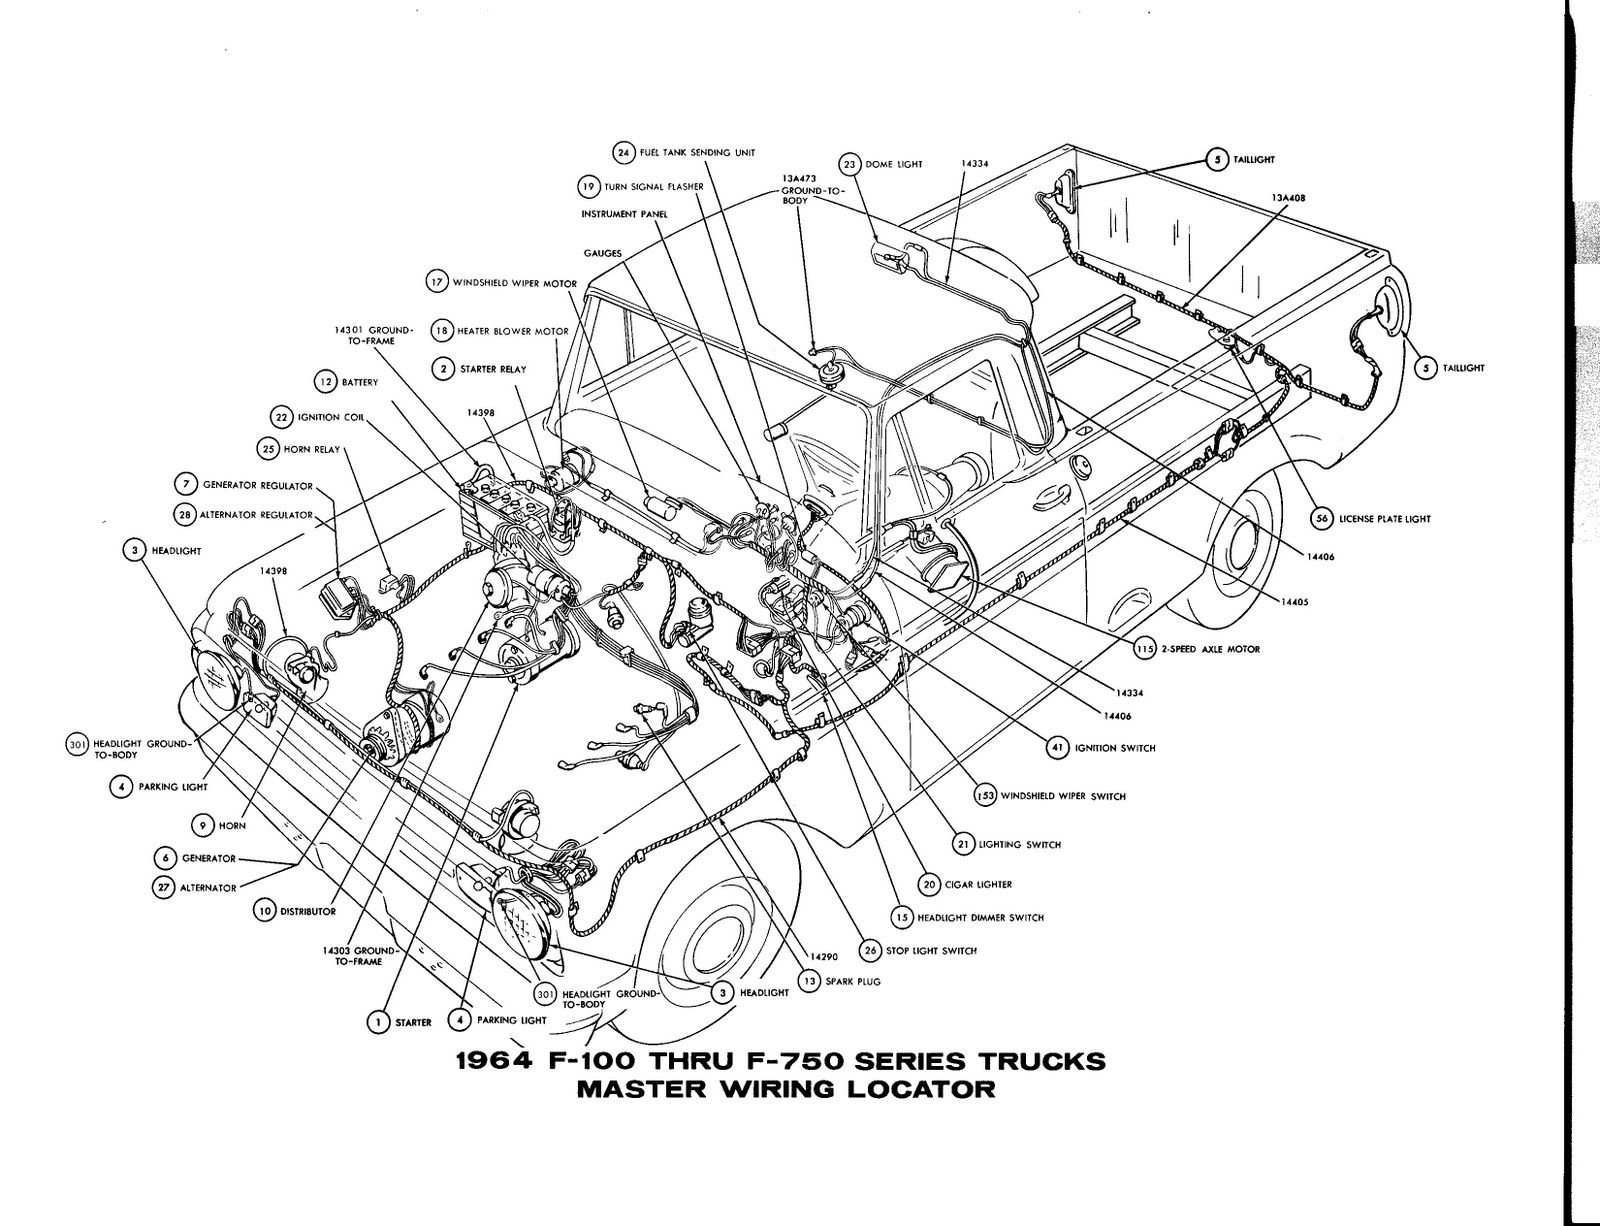 Pin By Scott C On 64 Ford F 100 Ford Truck 1964 Ford Diagram